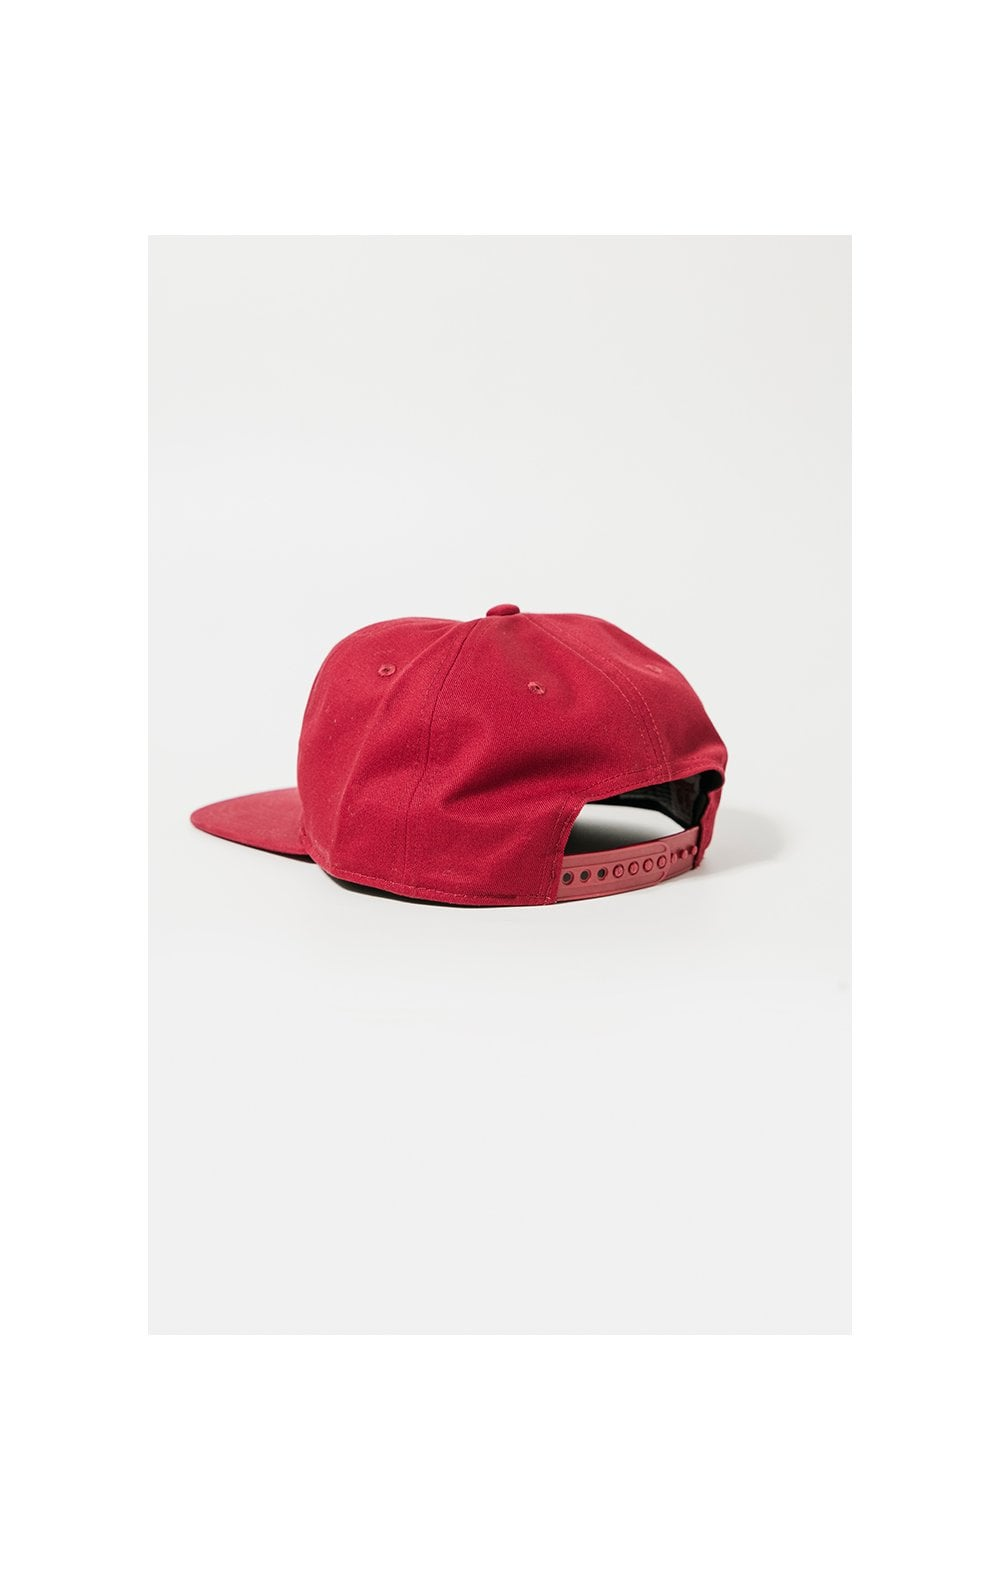 SikSilk Cotton Snap Back - Red (3)